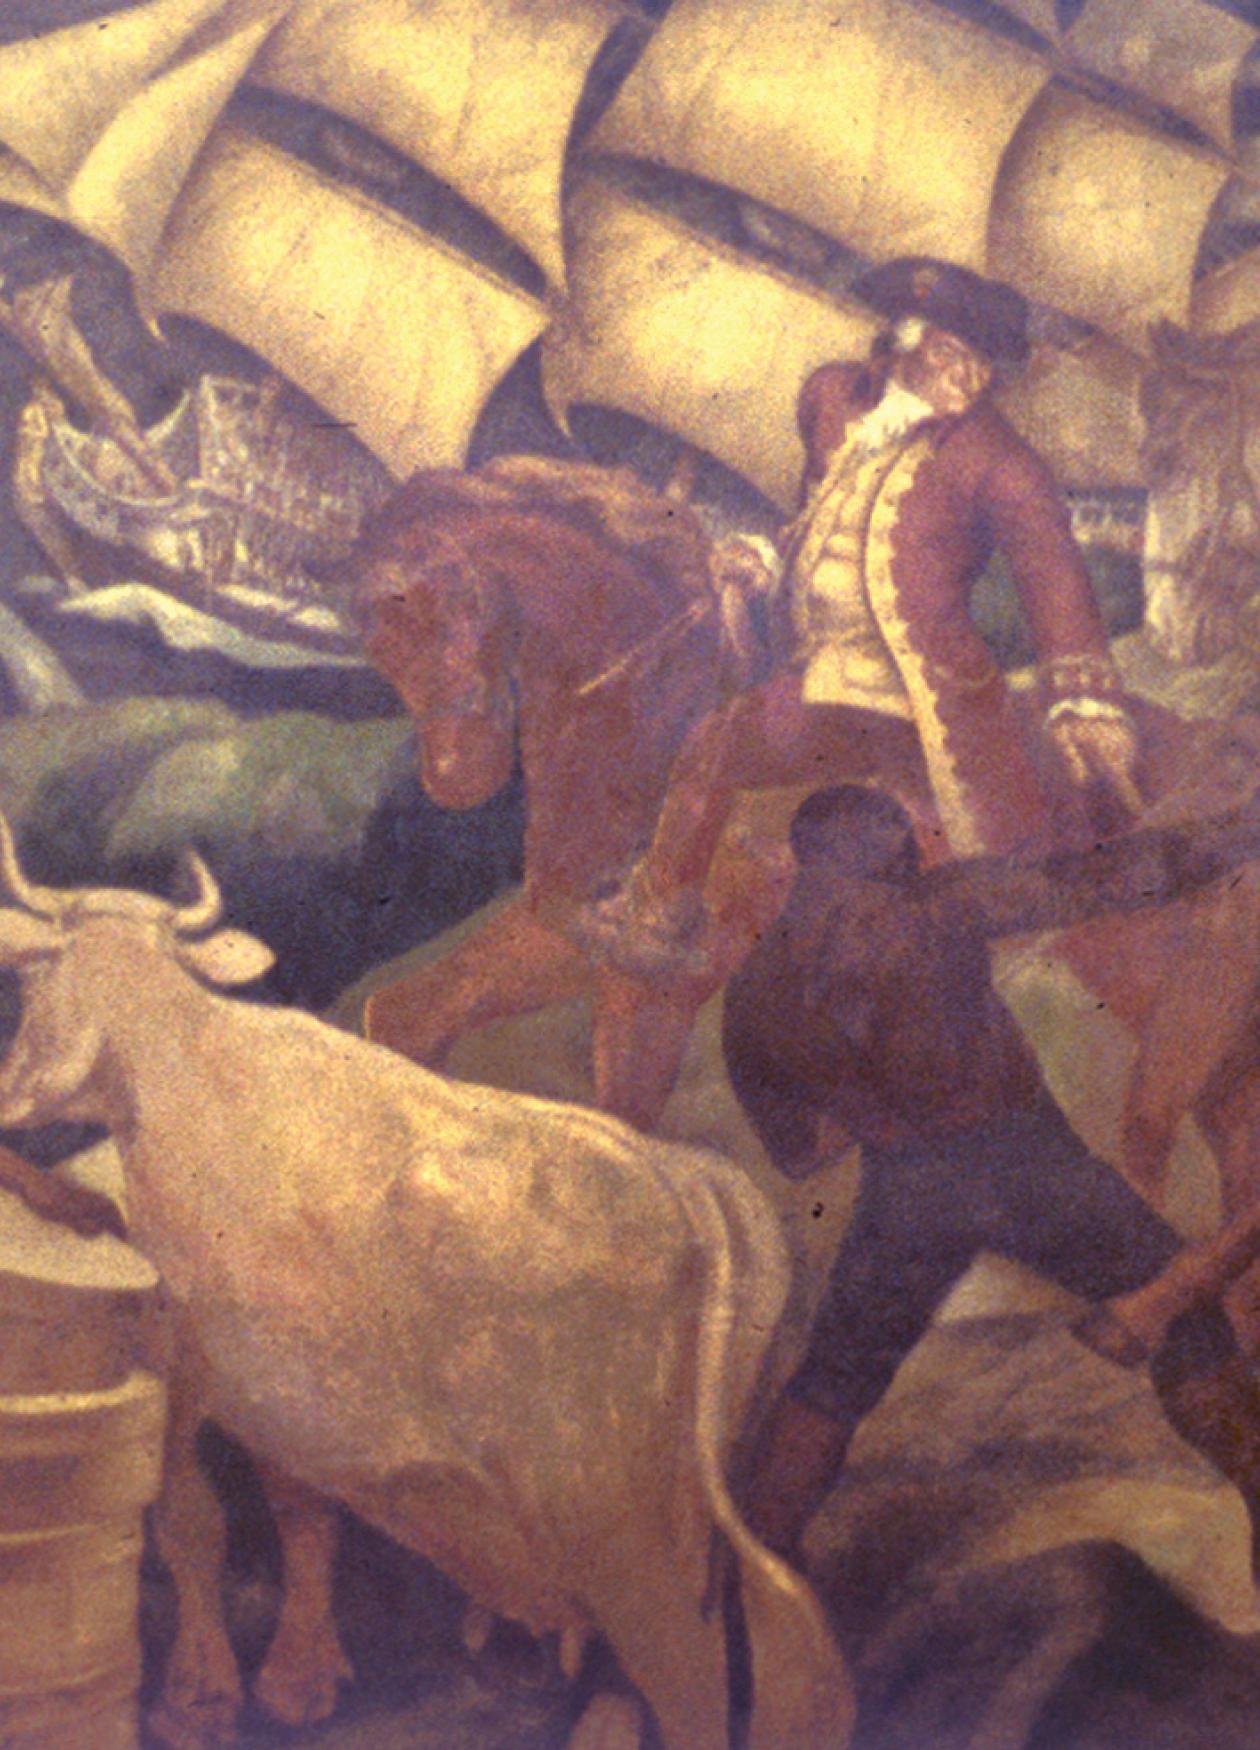 Mural depicting how planters utilized slaves in Rhode Island. Ships, cattle, horses, and bags of what appear to be wheat or sugar can be seen in it.